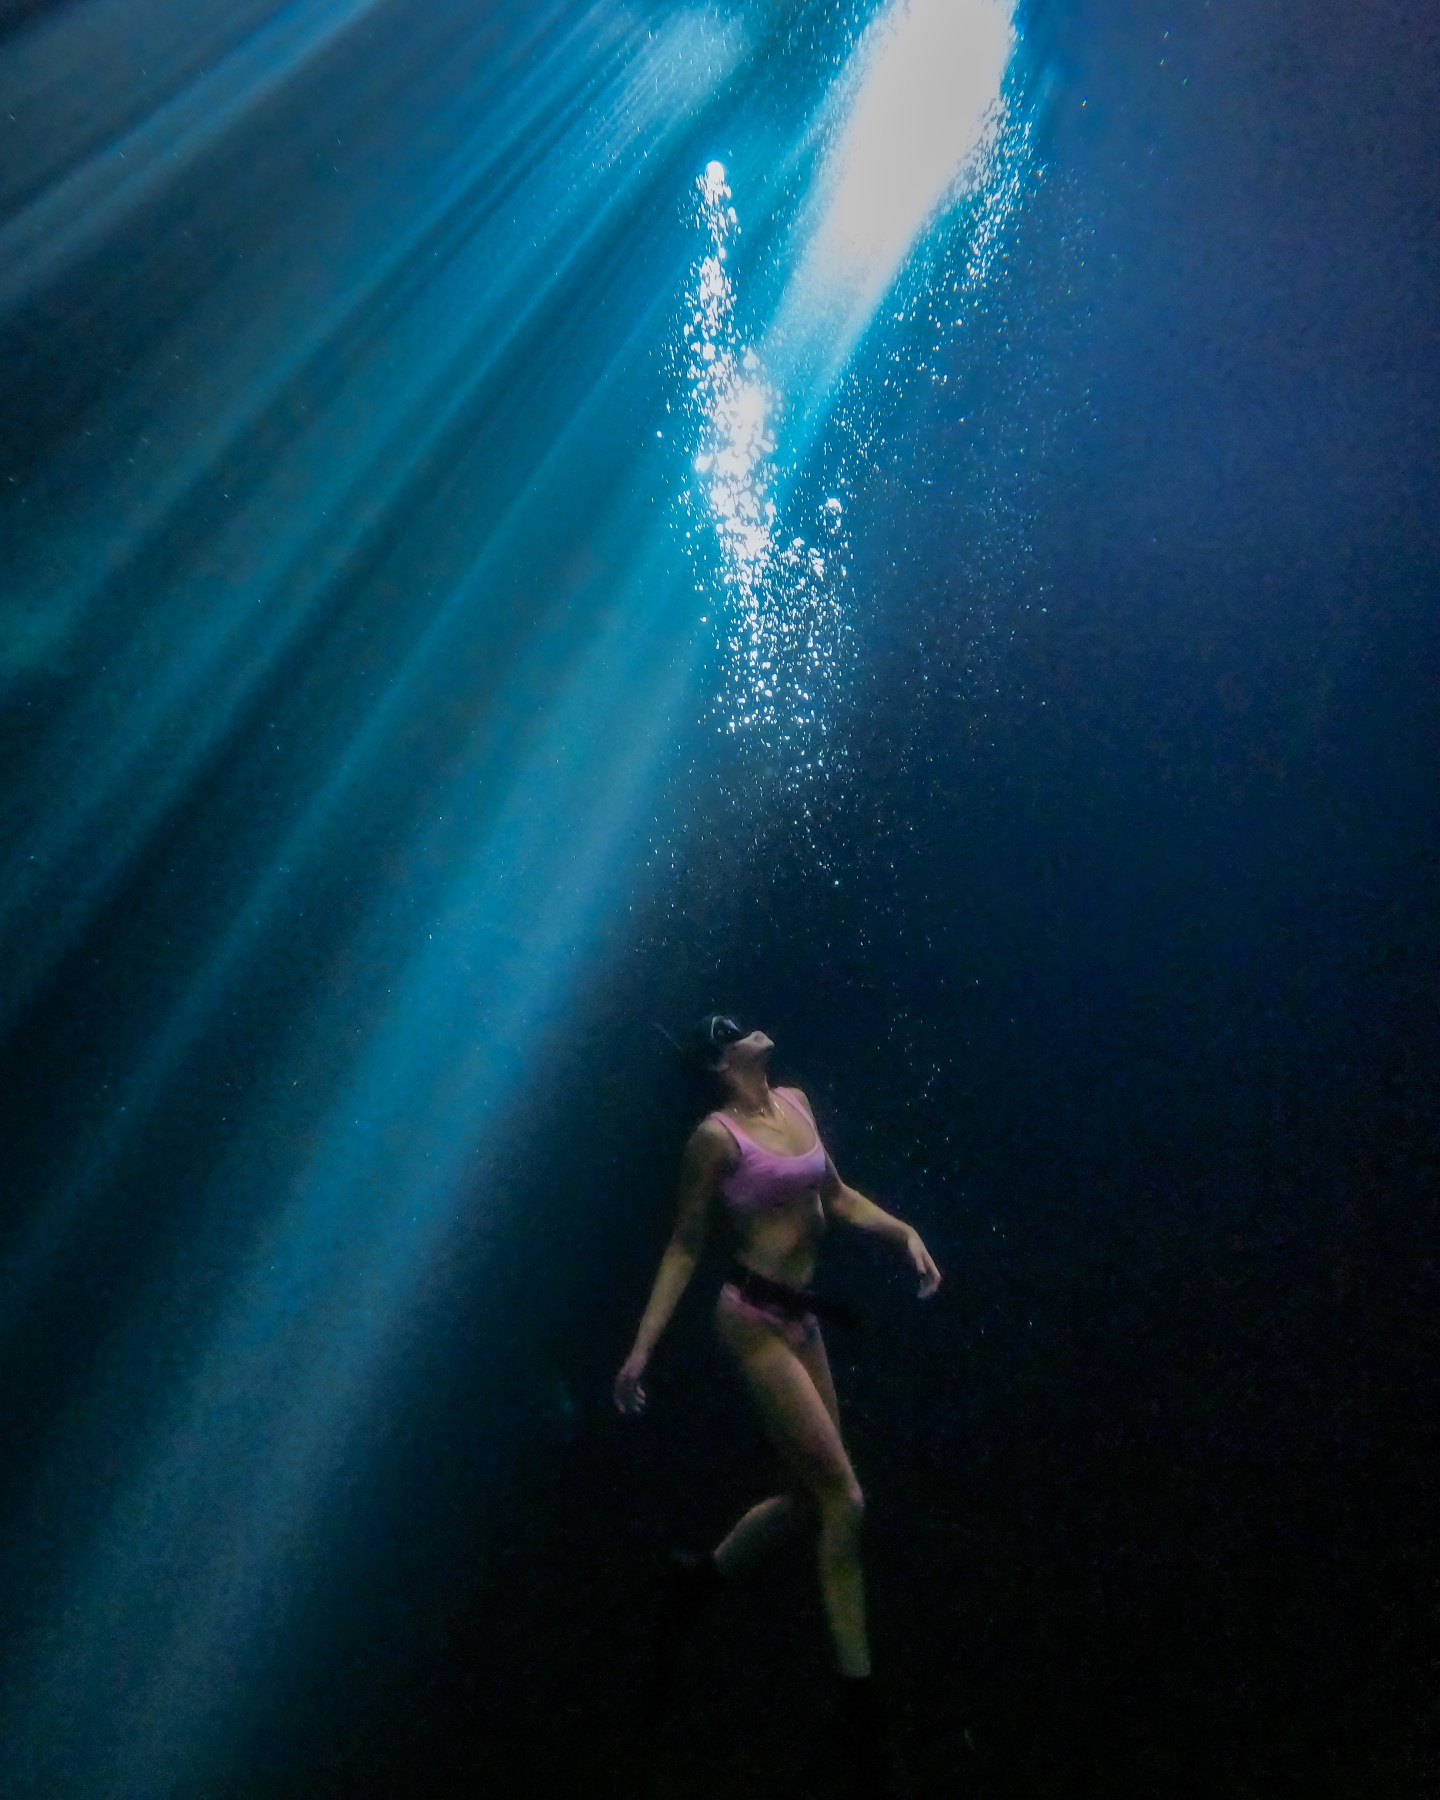 Kin-Ha Cenote Quintana Roo. This guide gives you tips for all of the best cenotes in Tulum and the best cenotes near Tulum including what to pack for the best Tulum cenotes and more. If you are looking for day trips from Tulum, check out the best cenotes in Quintana Roo and best cenotes in Yucatan for ideas! | Tulum cenotes photography | cenotes Mexico tulum | cenotes tulum riviera maya | best cenotes in quintana roo | cenotes quintana roo | cenotes in playa del carmen